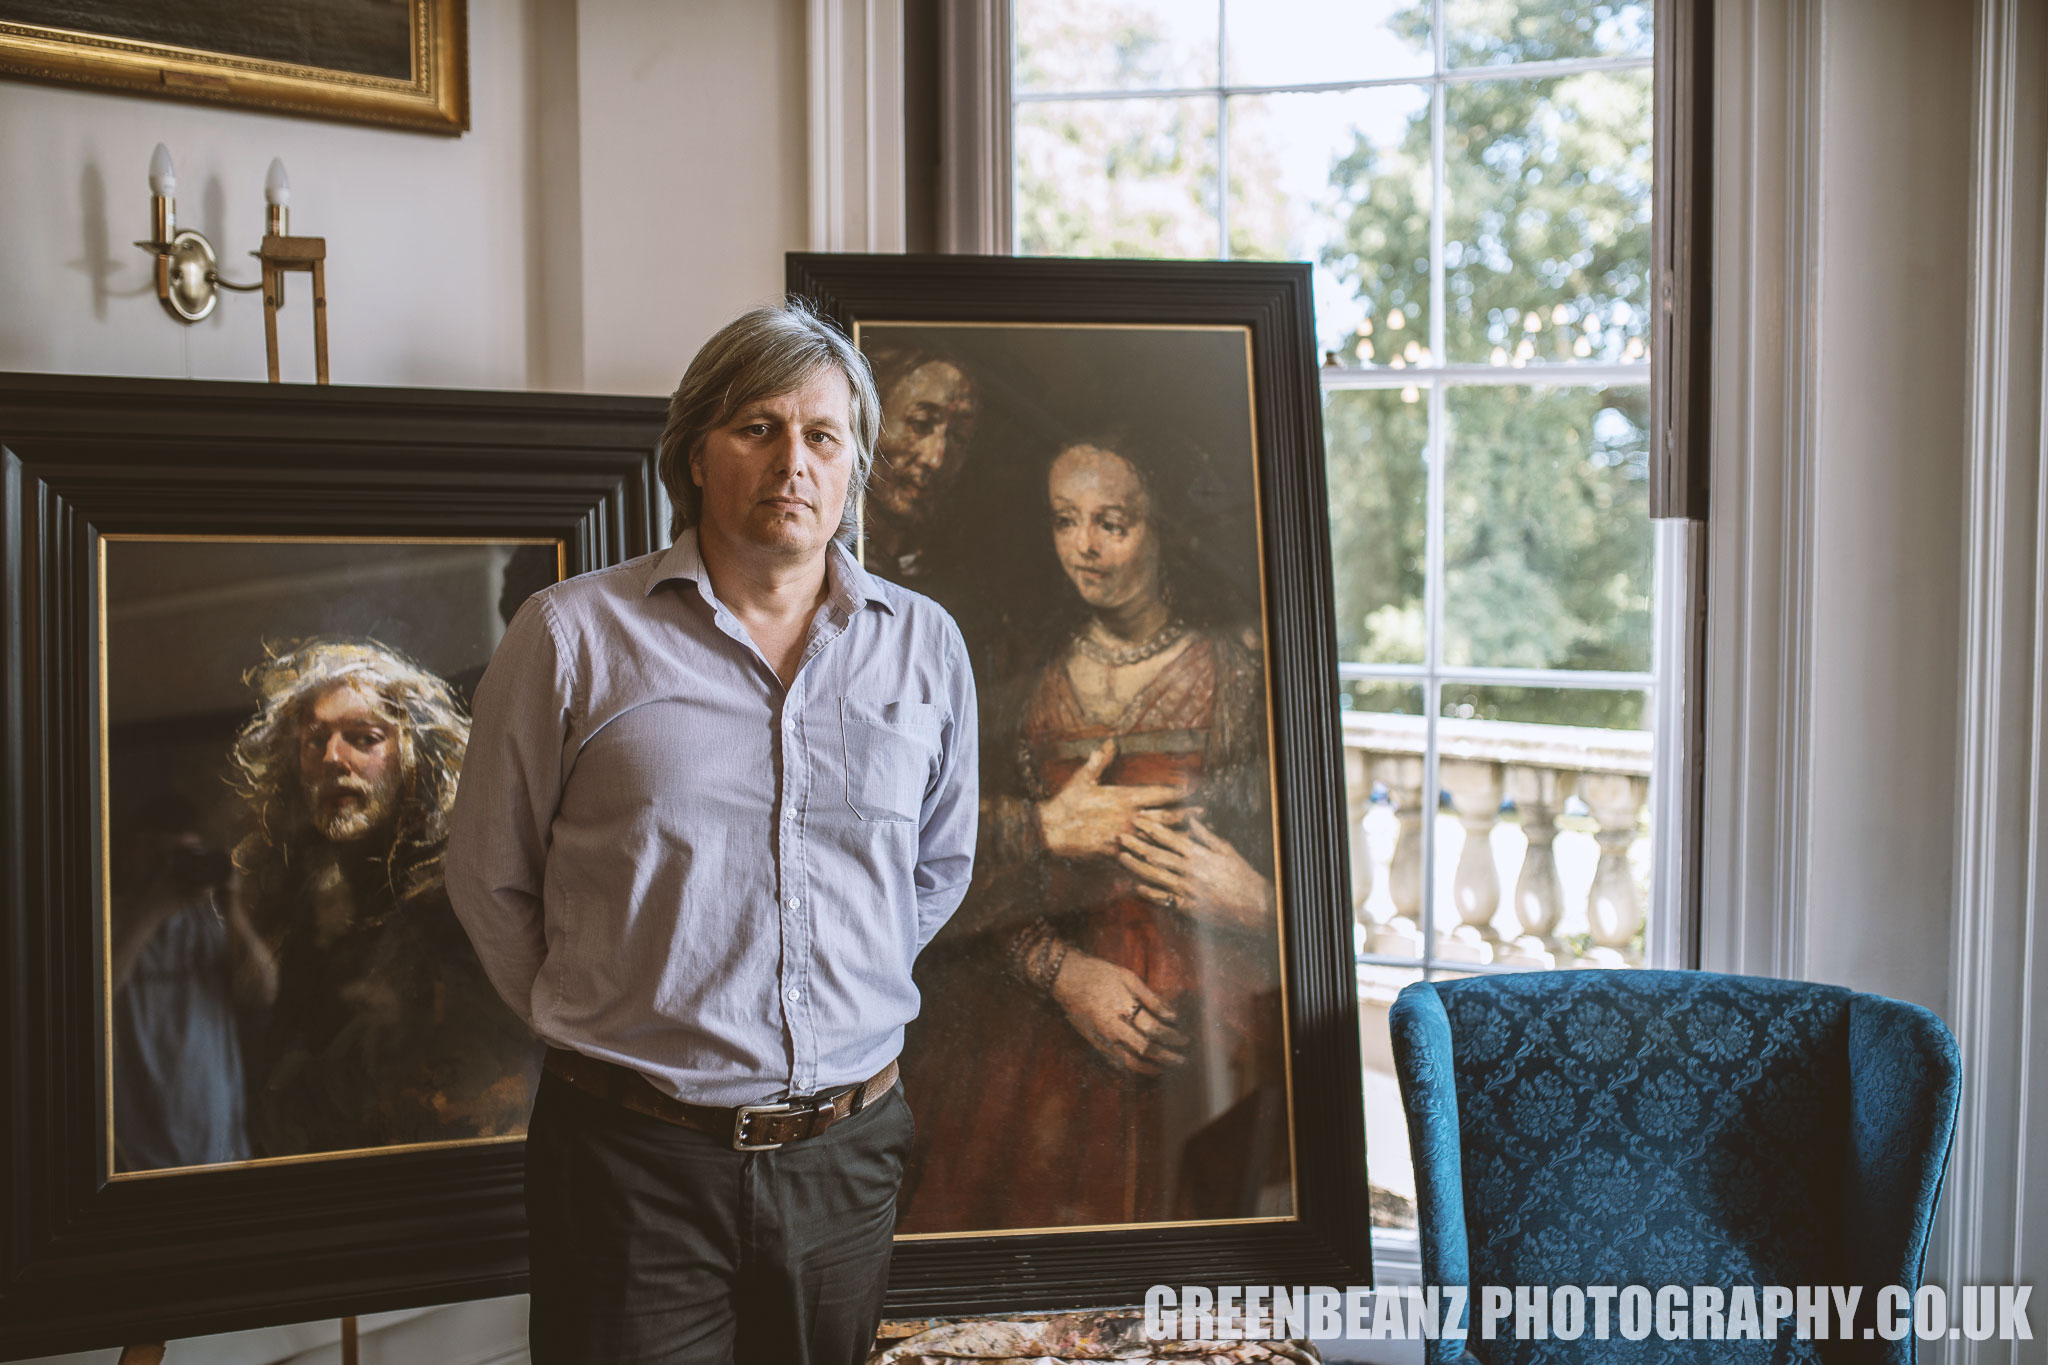 Reuben Lenkiewicz in front of his father Robert Lenkiewicz paintings at the show